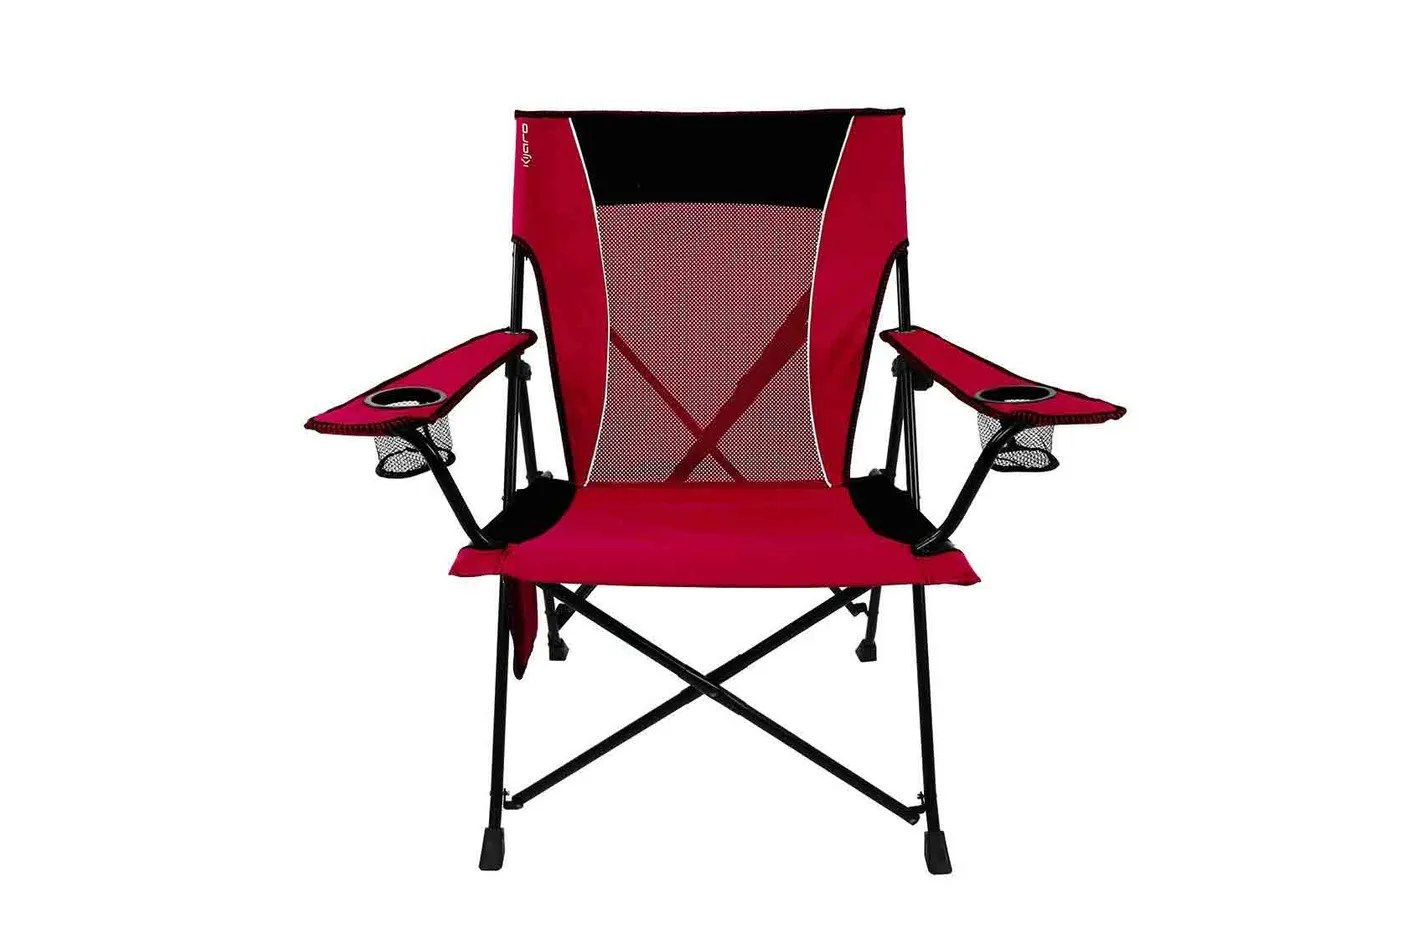 Camping Chair With Canopy Kijaro Dual Lock Chair